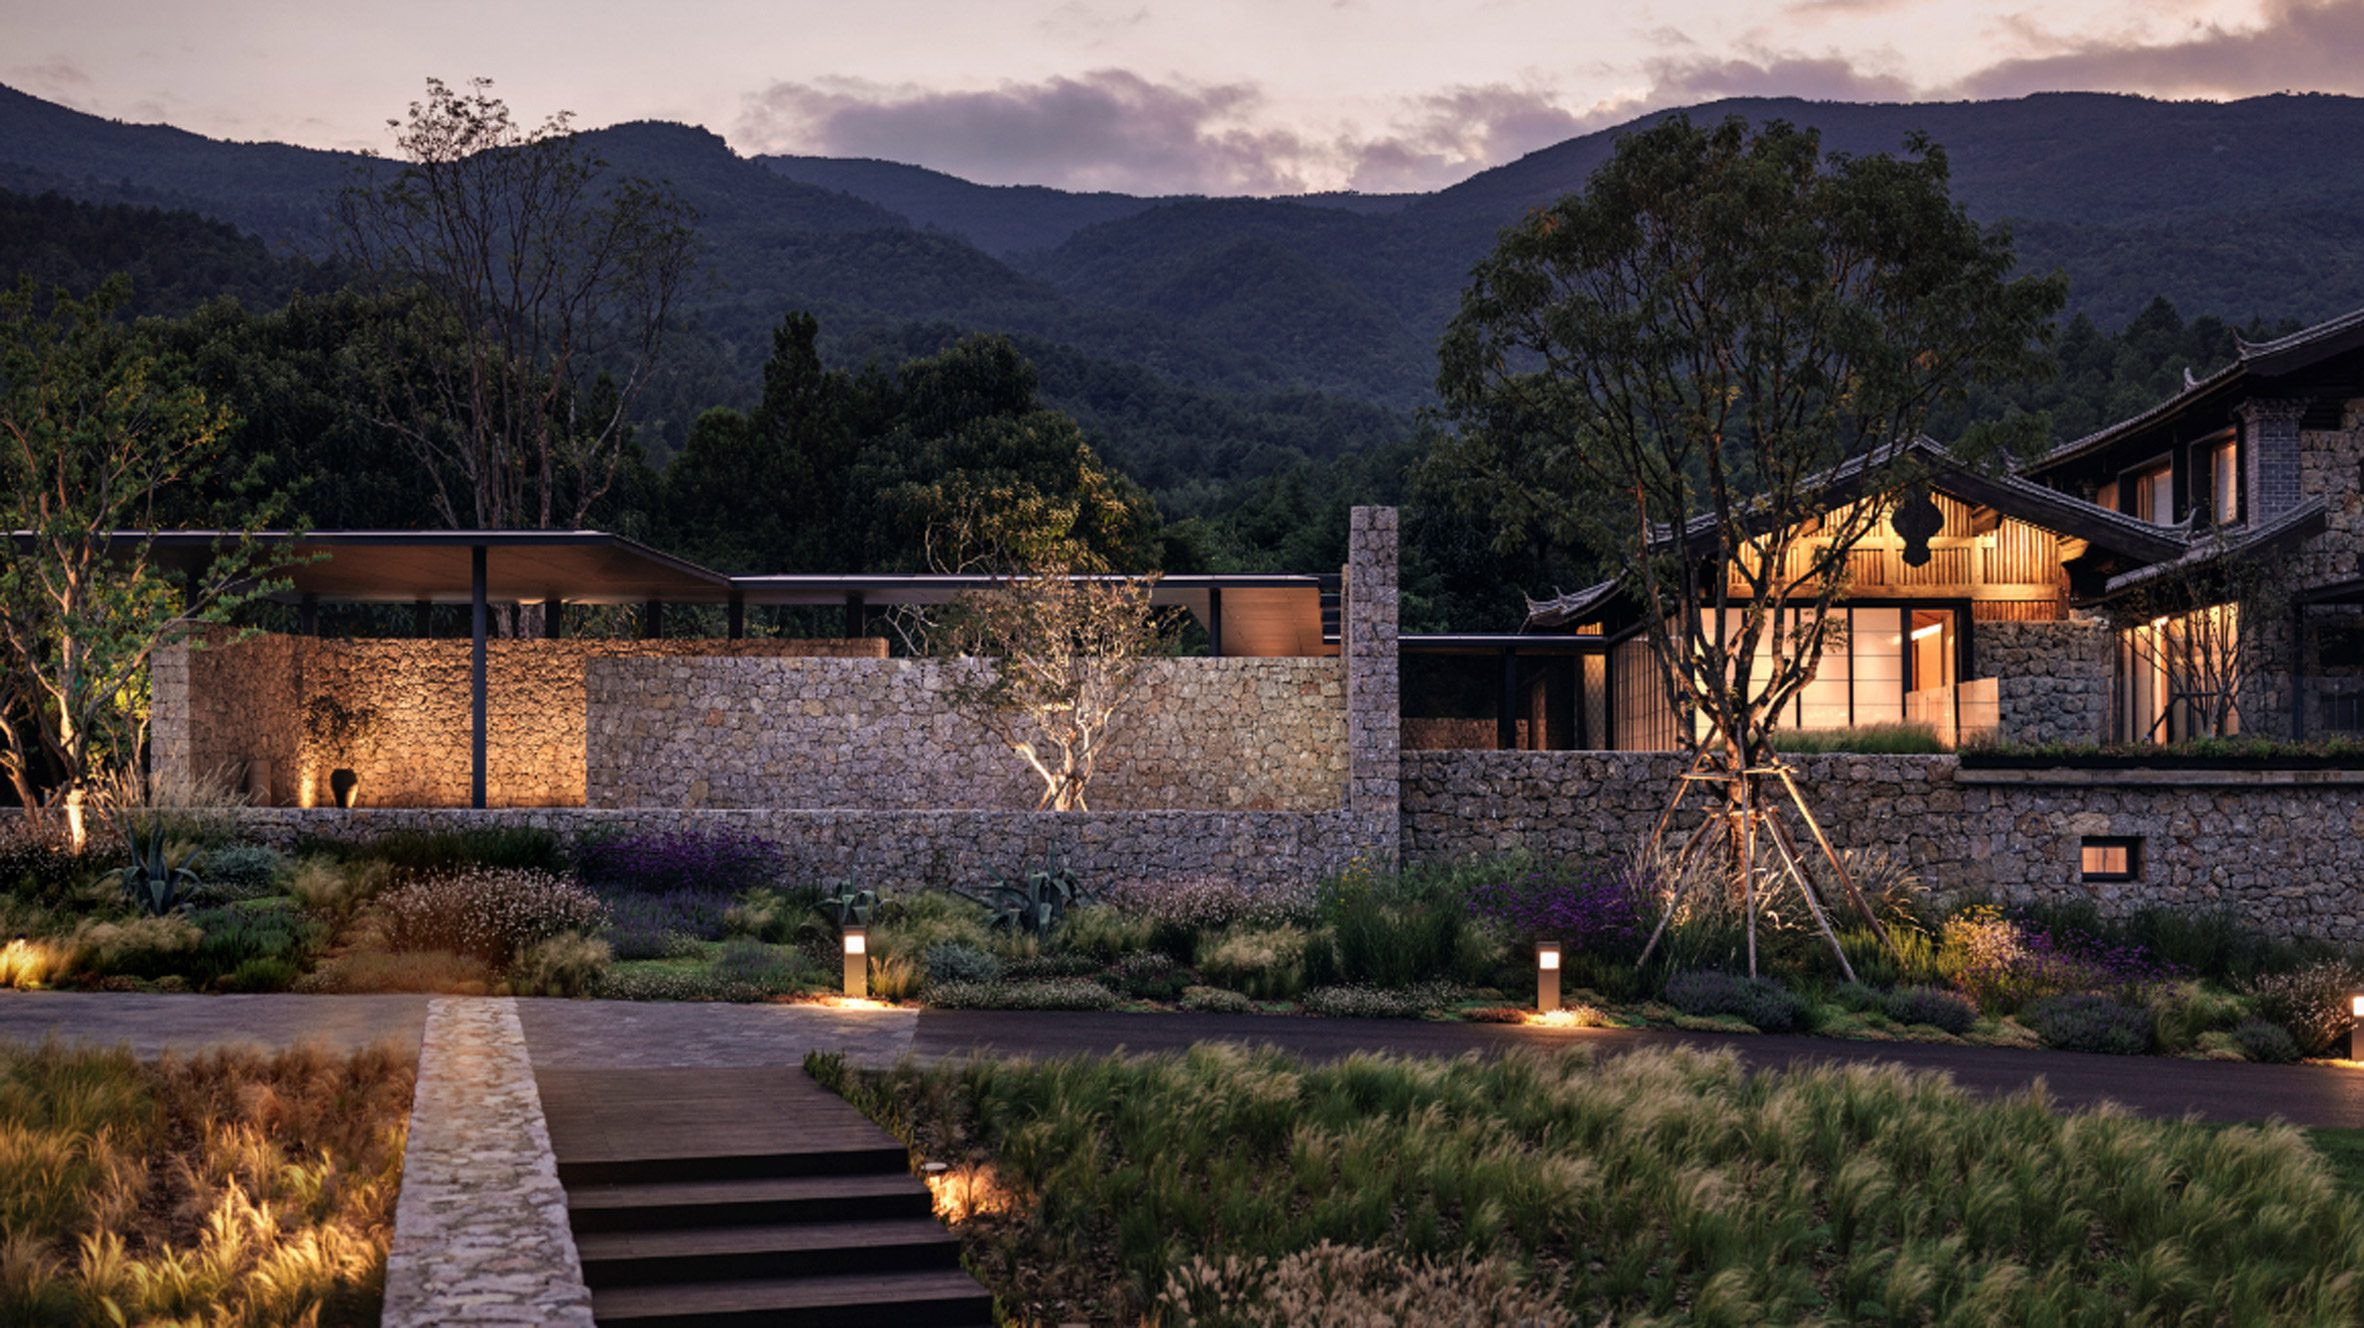 The landscaping and outdoor space of Lijiang Hylla Vintage Hotel